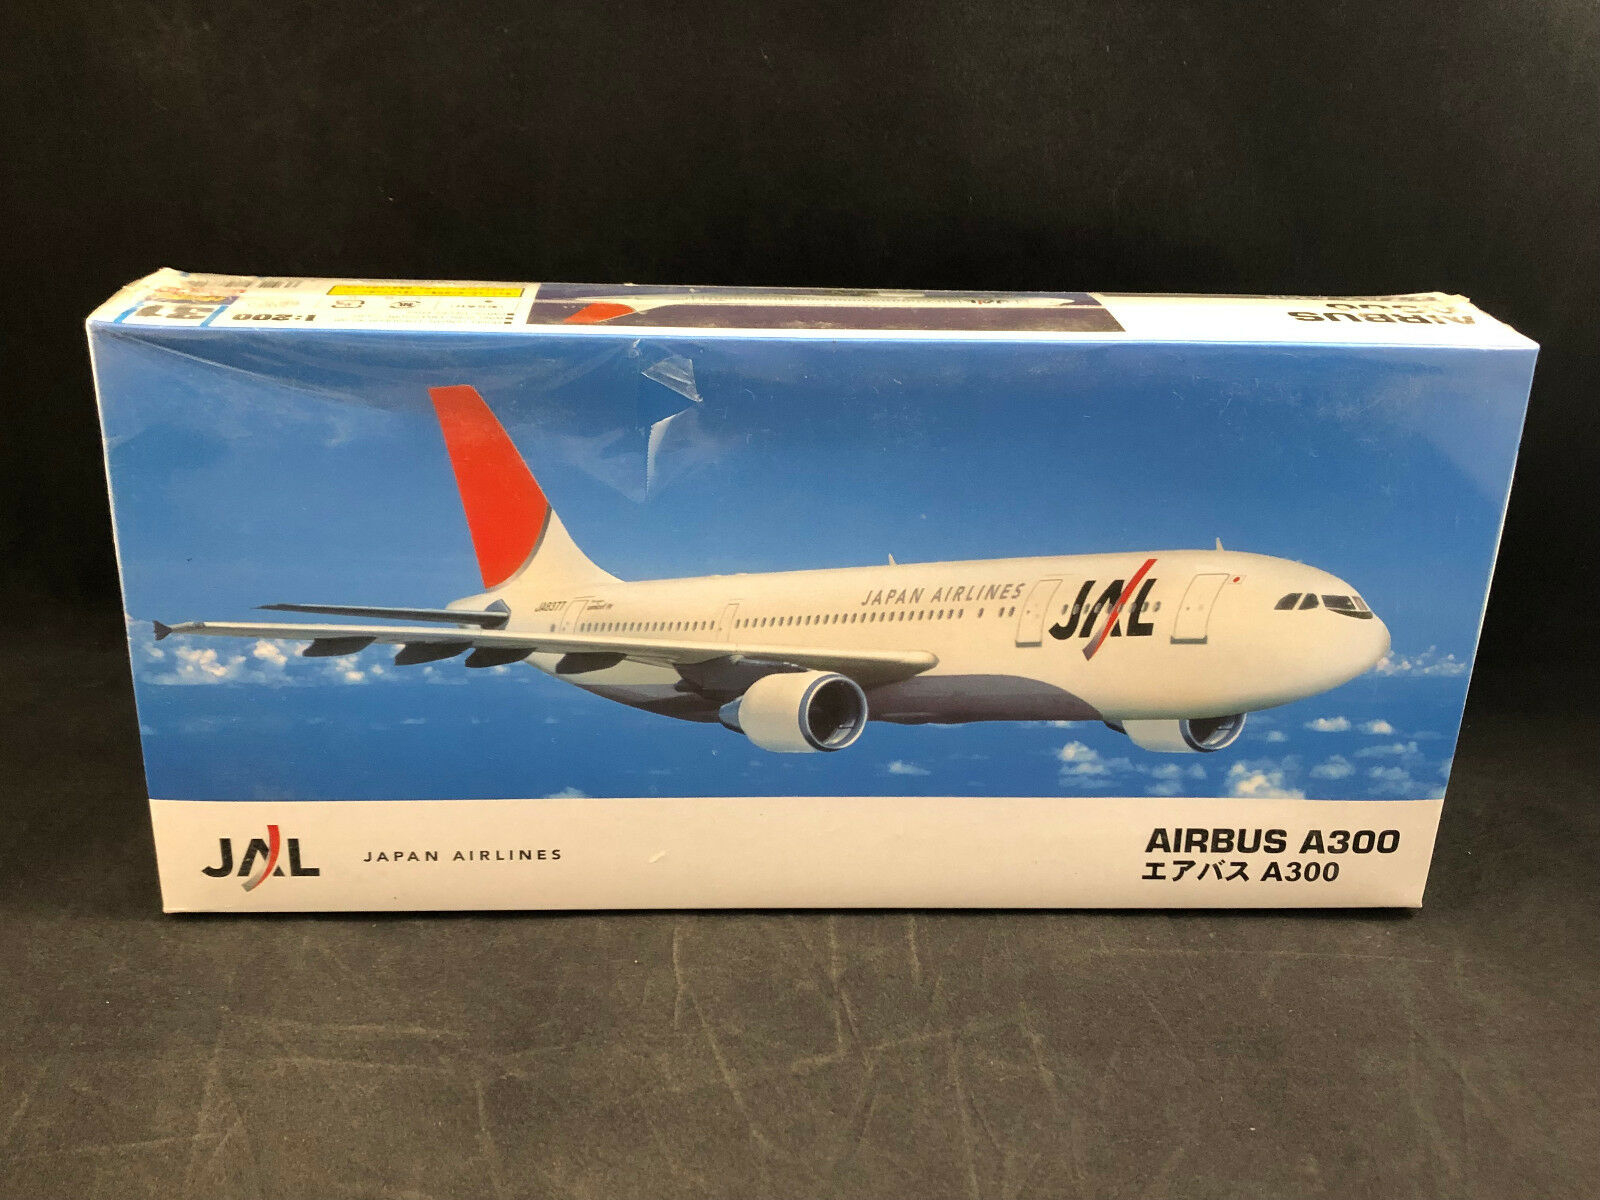 Hasegawa Japan Airlines Airbus A300 1 200 Scale Plastic Model Kit 10731 NIB